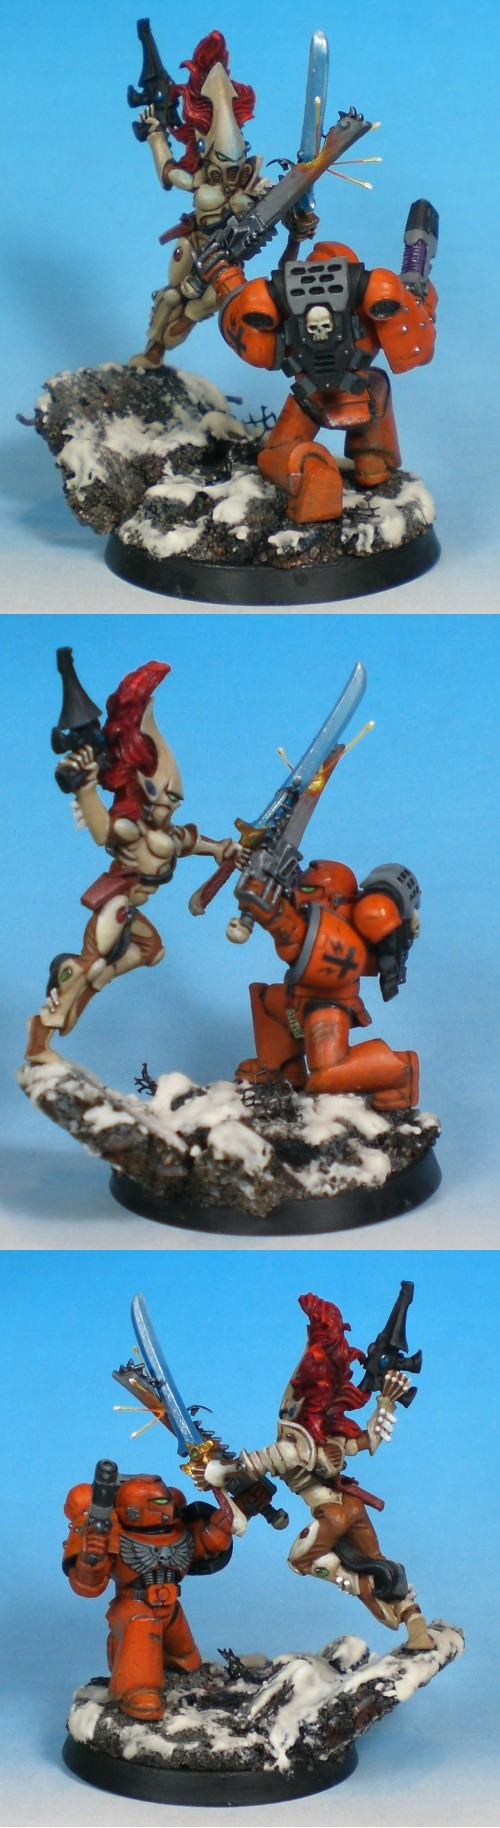 Duel: Howling Banshee vs. Space Marine Sergeant (Chicago GD 08 Hon. Mention)